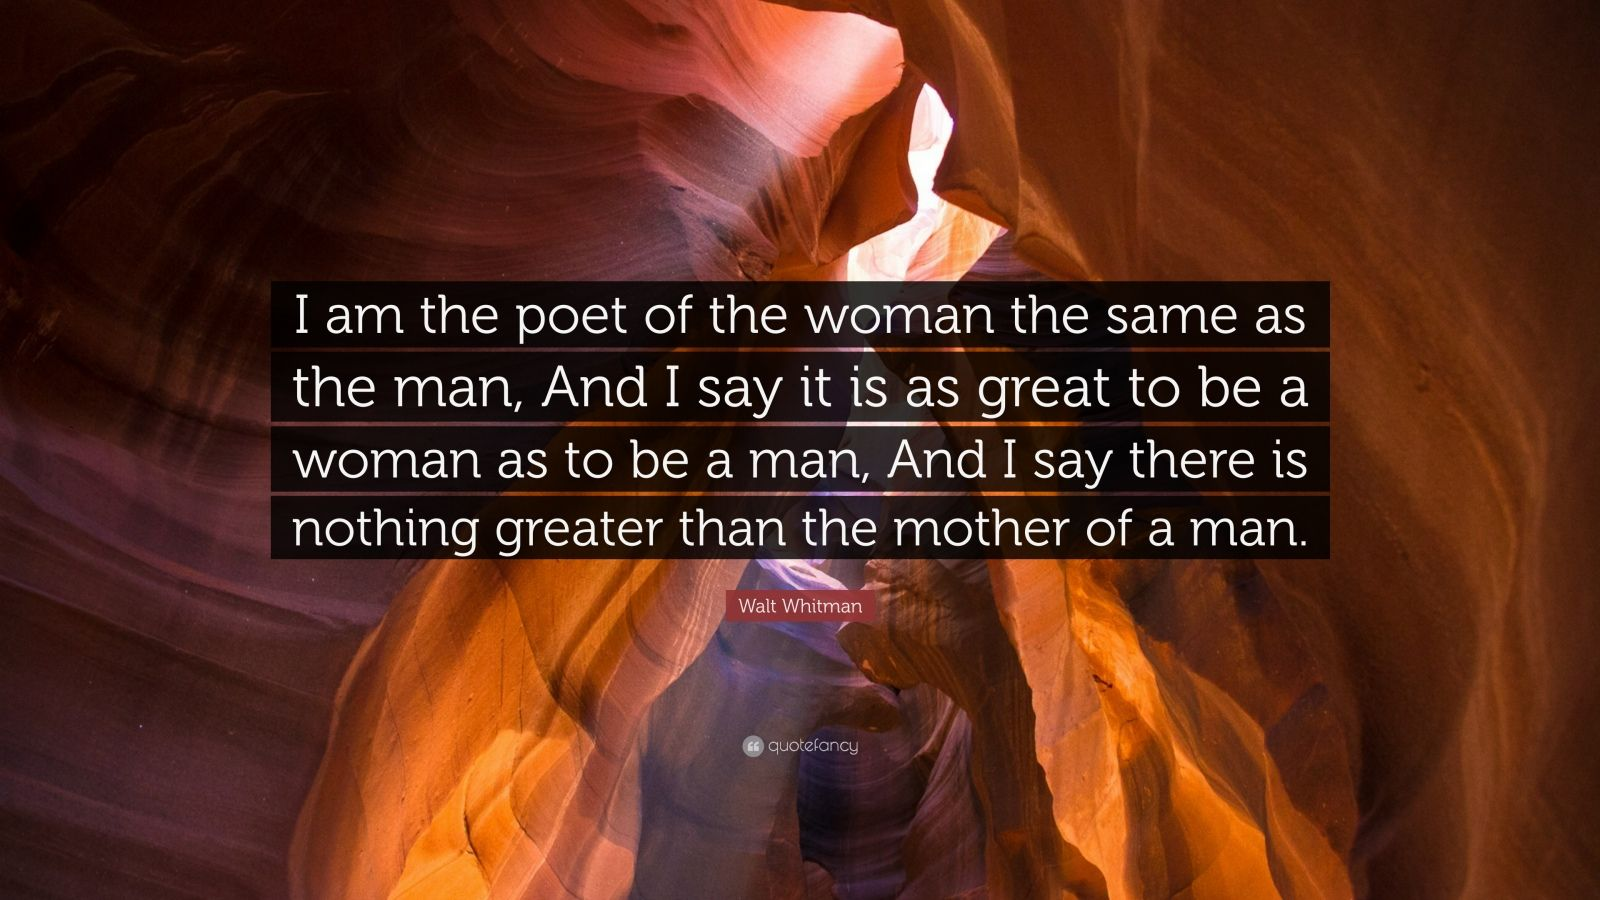 """Walt Whitman Quote: """"I am the poet of the woman the same as the man, And I say it is as great to be a woman as to be a man, And I say there is nothing greater than the mother of a man."""""""